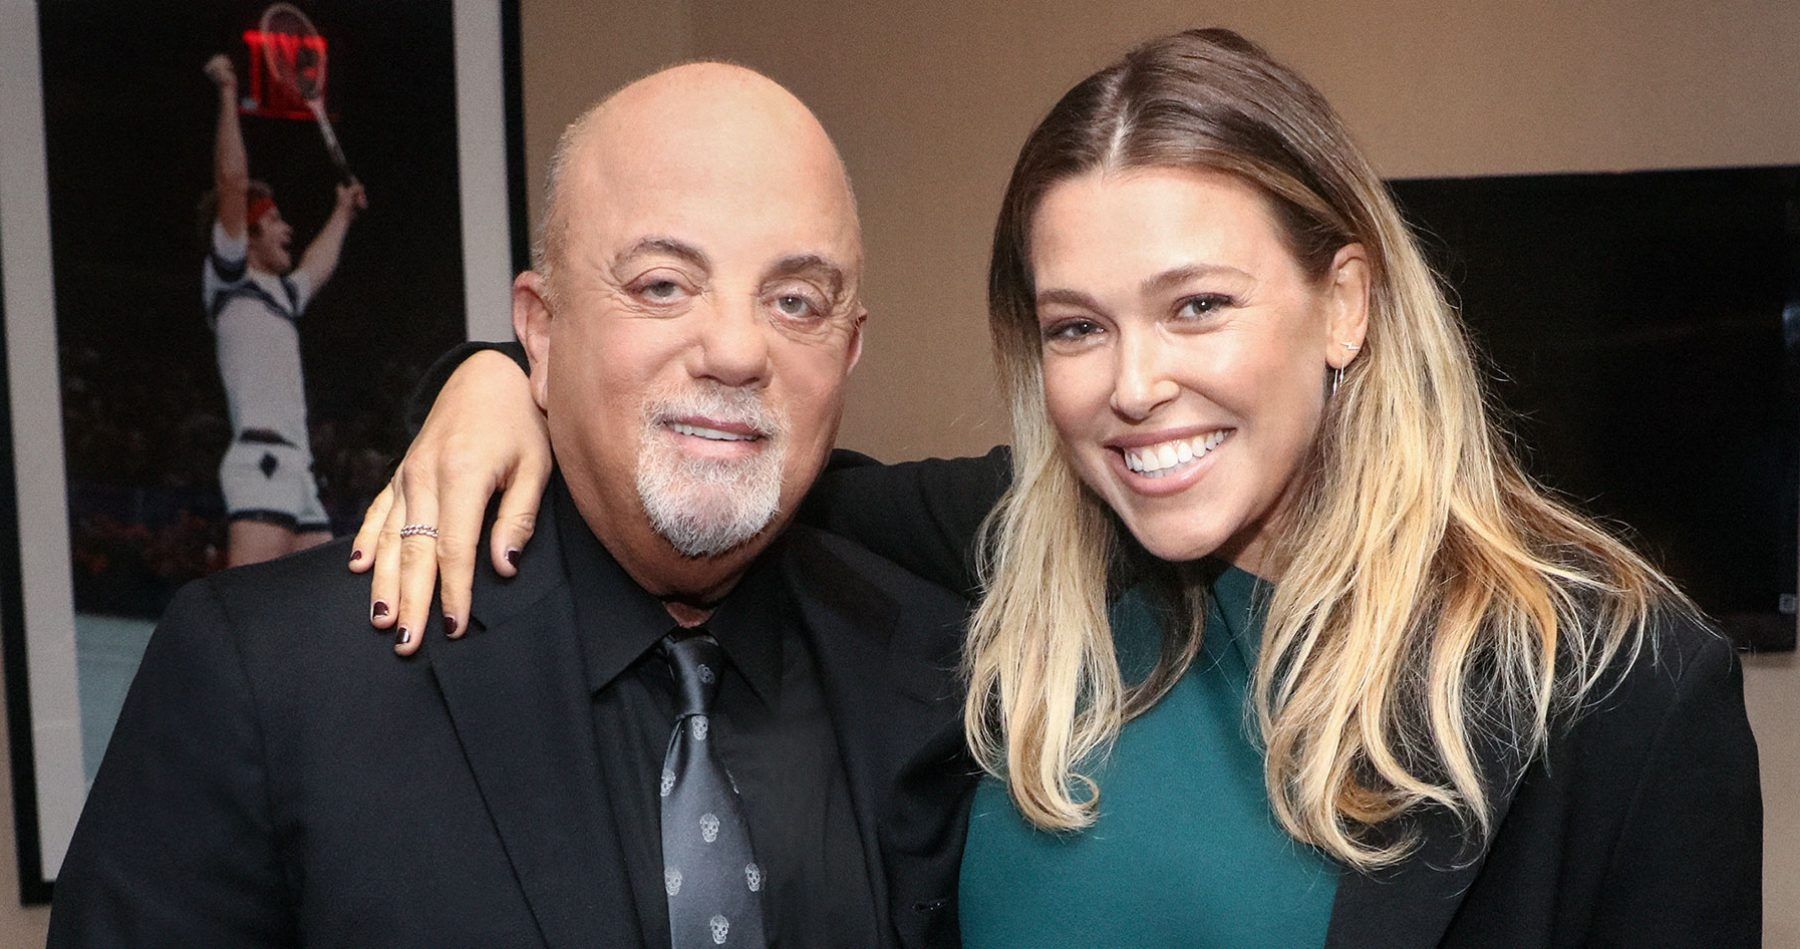 Billy Joel backstage with Rachel Platten at Madison Square Garden in New York, NY September 30, 2018